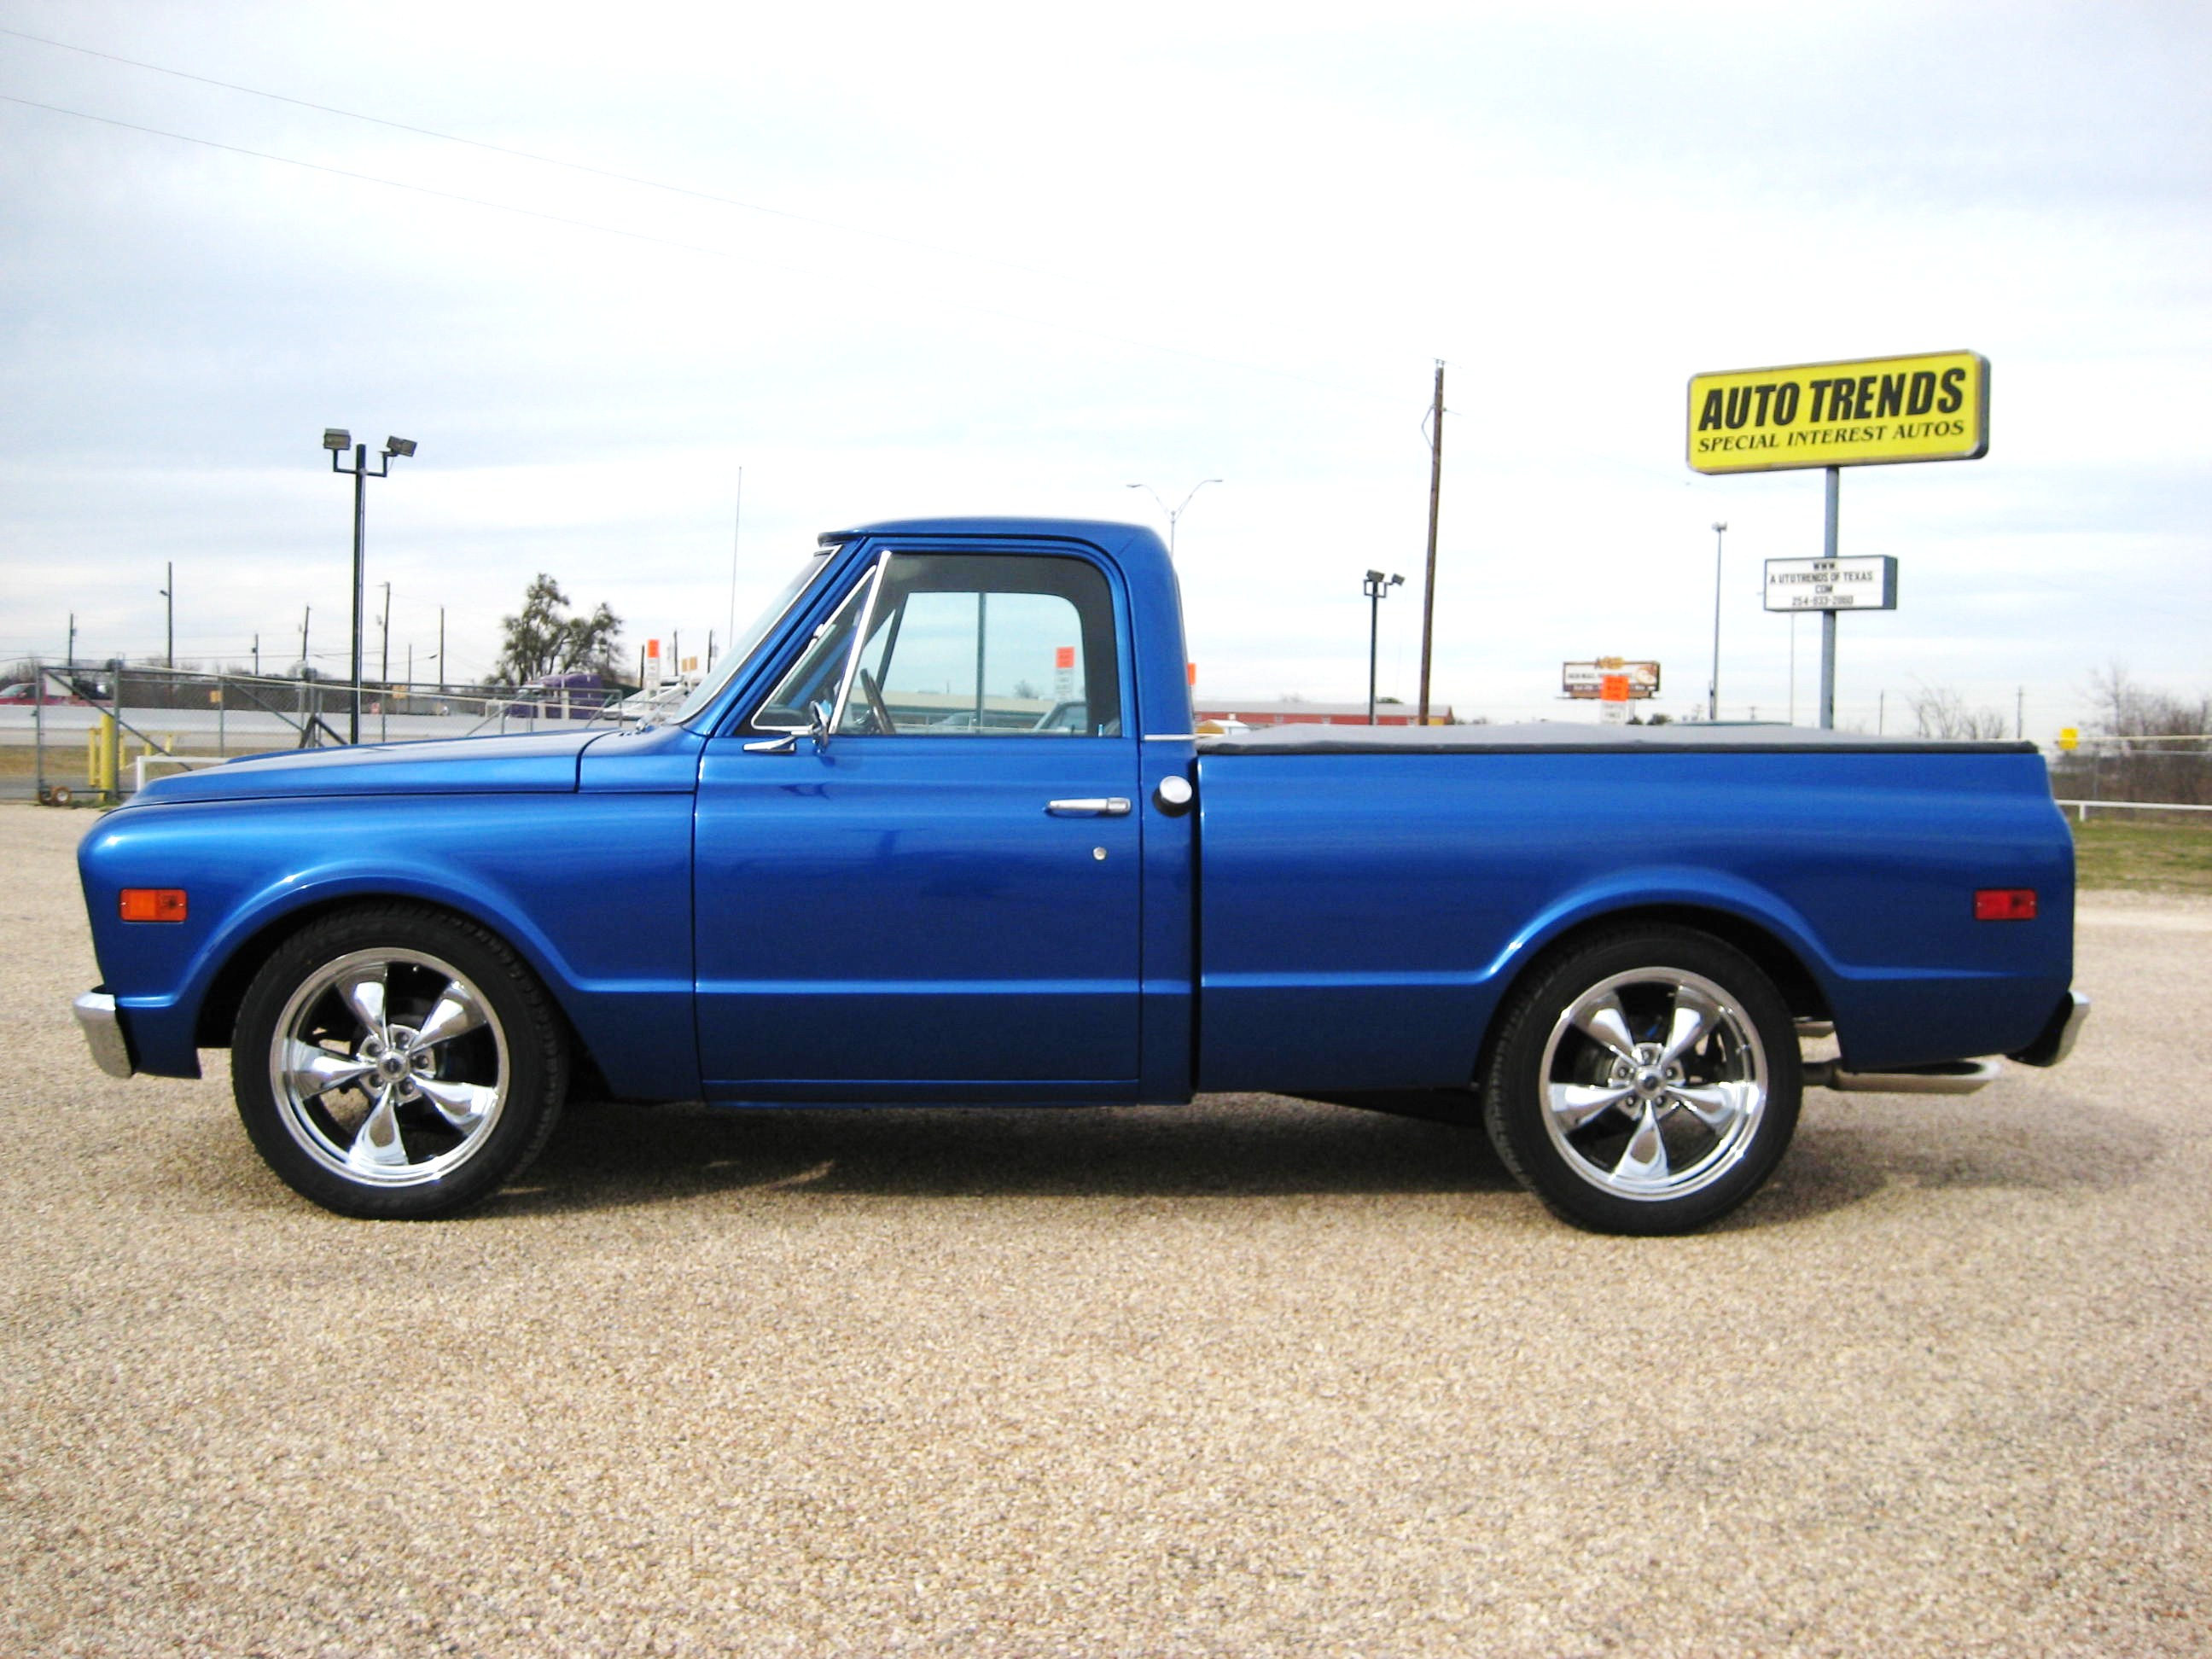 1970 Chevy Pickup >> C10 | AutoTrends